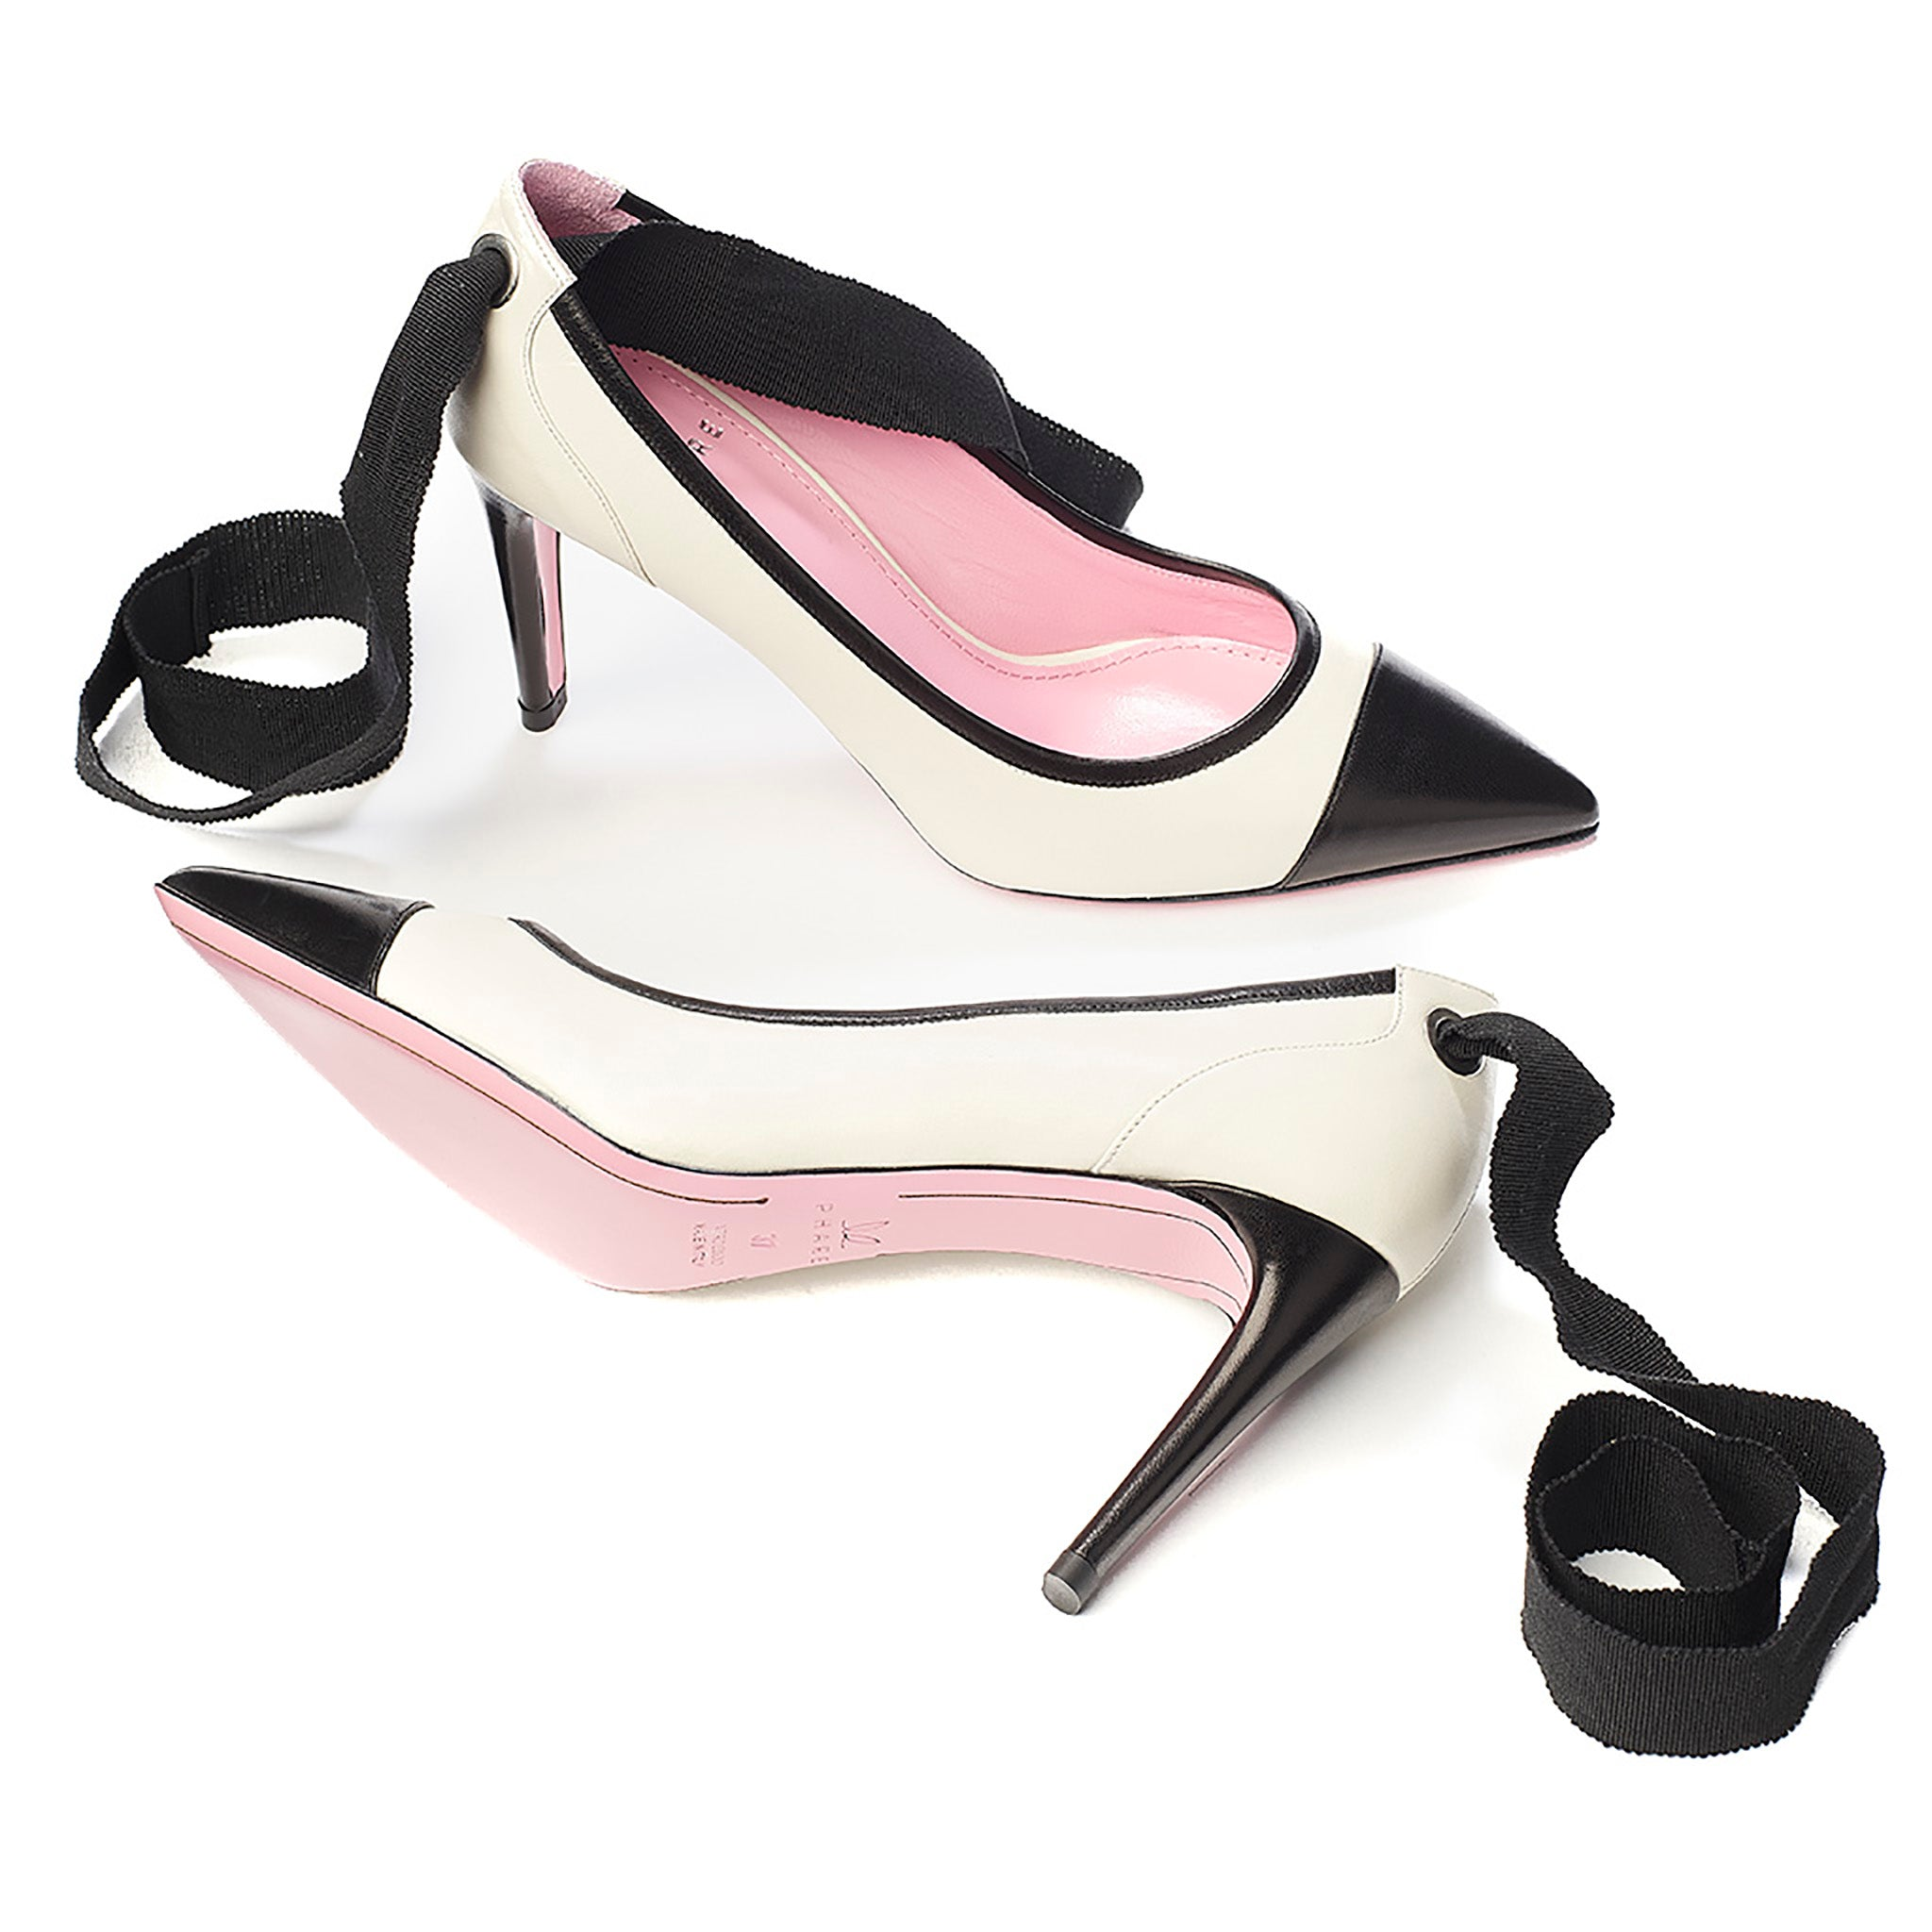 Ribbon tie pump in cream/black leather sole view